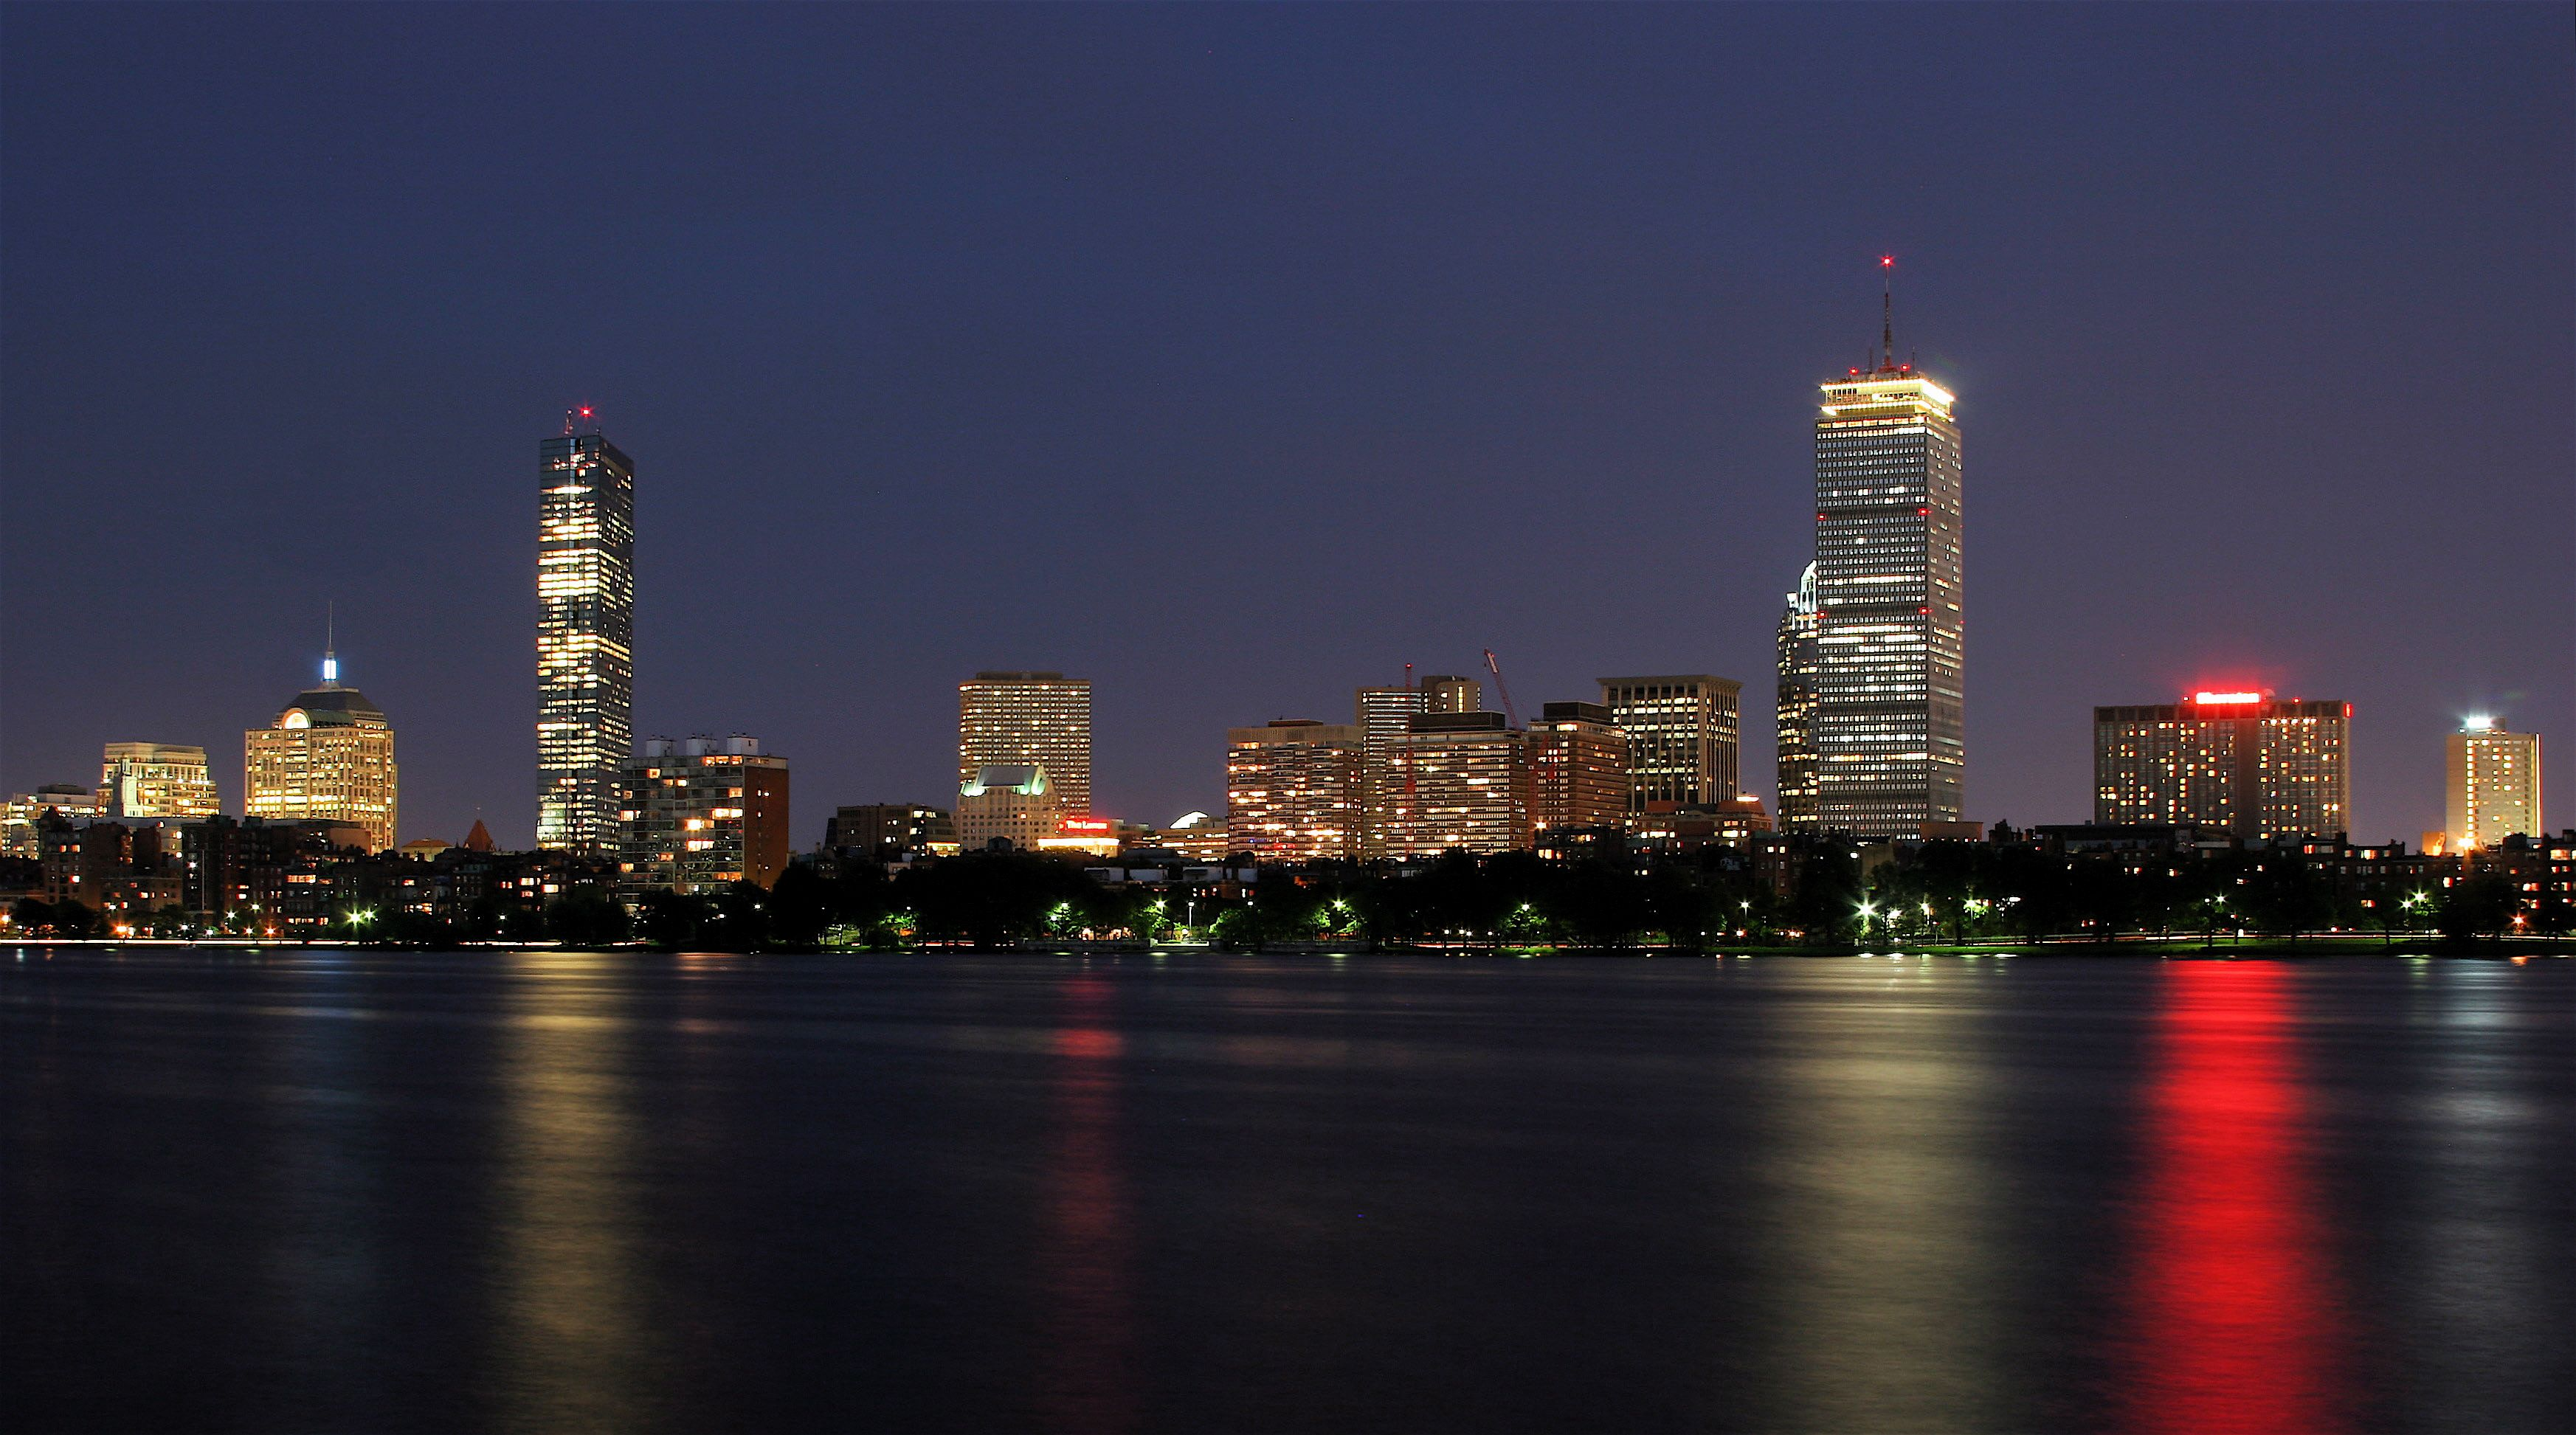 Boston Skyline As Seen From Cambridge Jpg 3491 1945 Boston Skyline Skyline Boston Things To Do